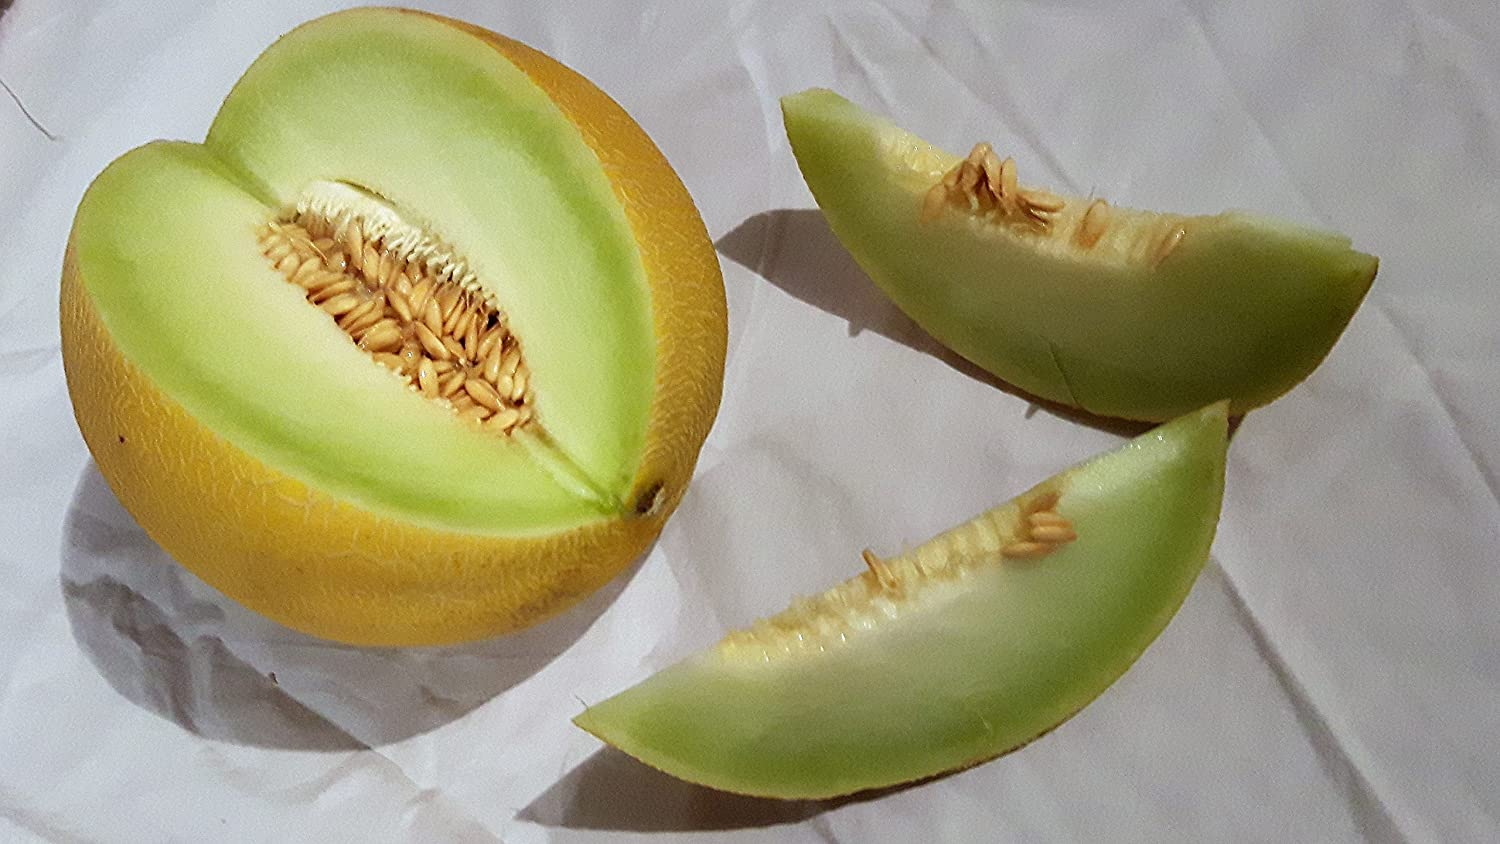 GALIA MELON SWEET EDIBLE FRUIT SEEDS PACKET OF FRESHLY PREPARED 20 SEEDS CORNWALL PLANTS